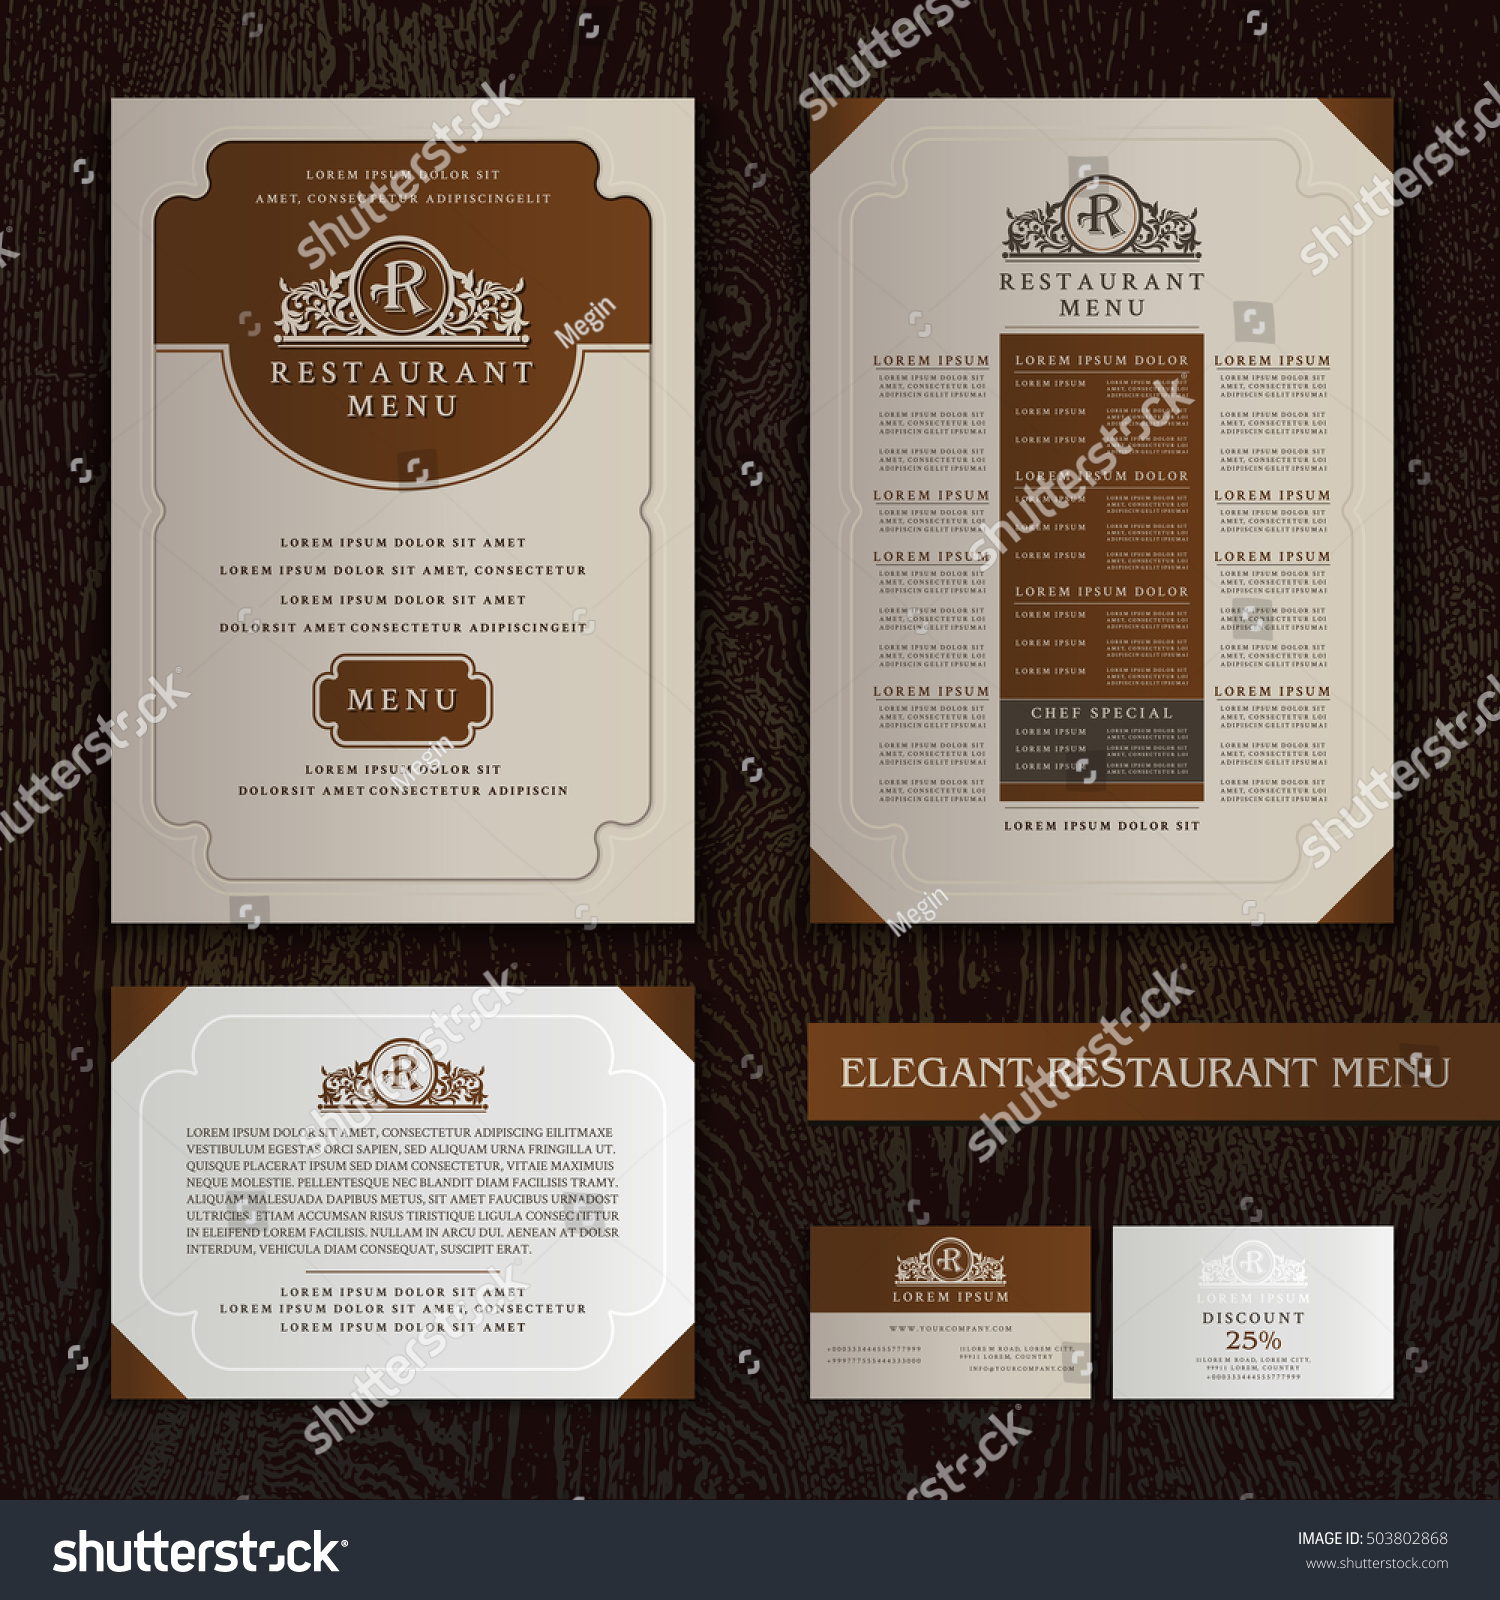 Vector Restaurant Menu Design Brochure Template Stock Vector - Elegant brochure templates